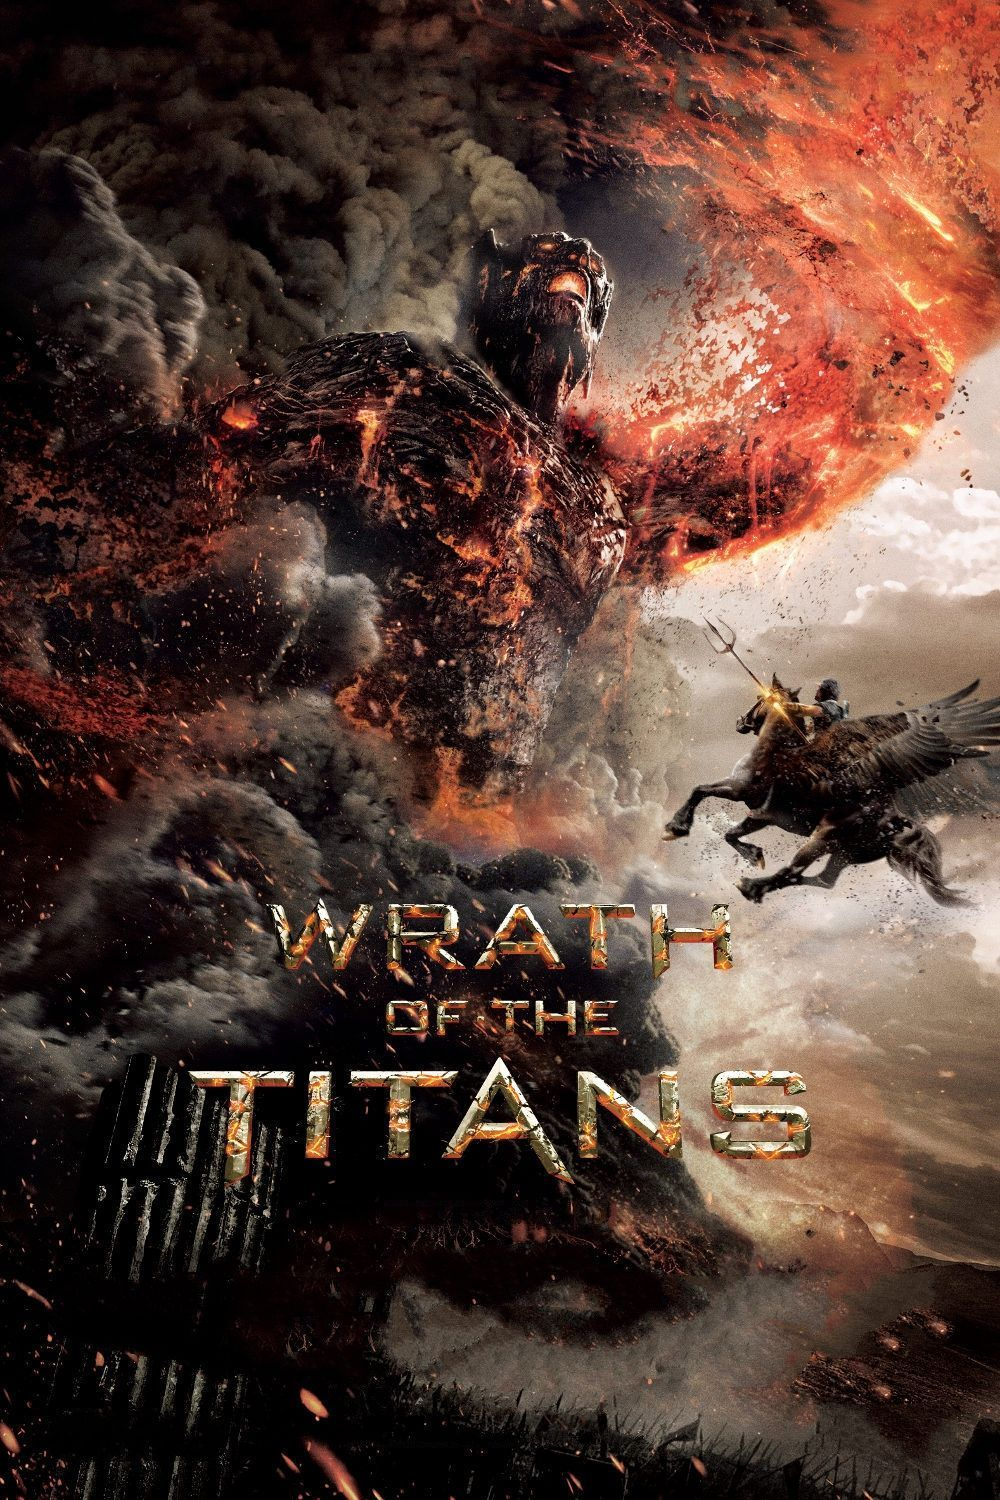 Wrath Of The Titans Actionmovies Action Movies Cinematography Wrath Of The Titans Wrath Hunter Movie